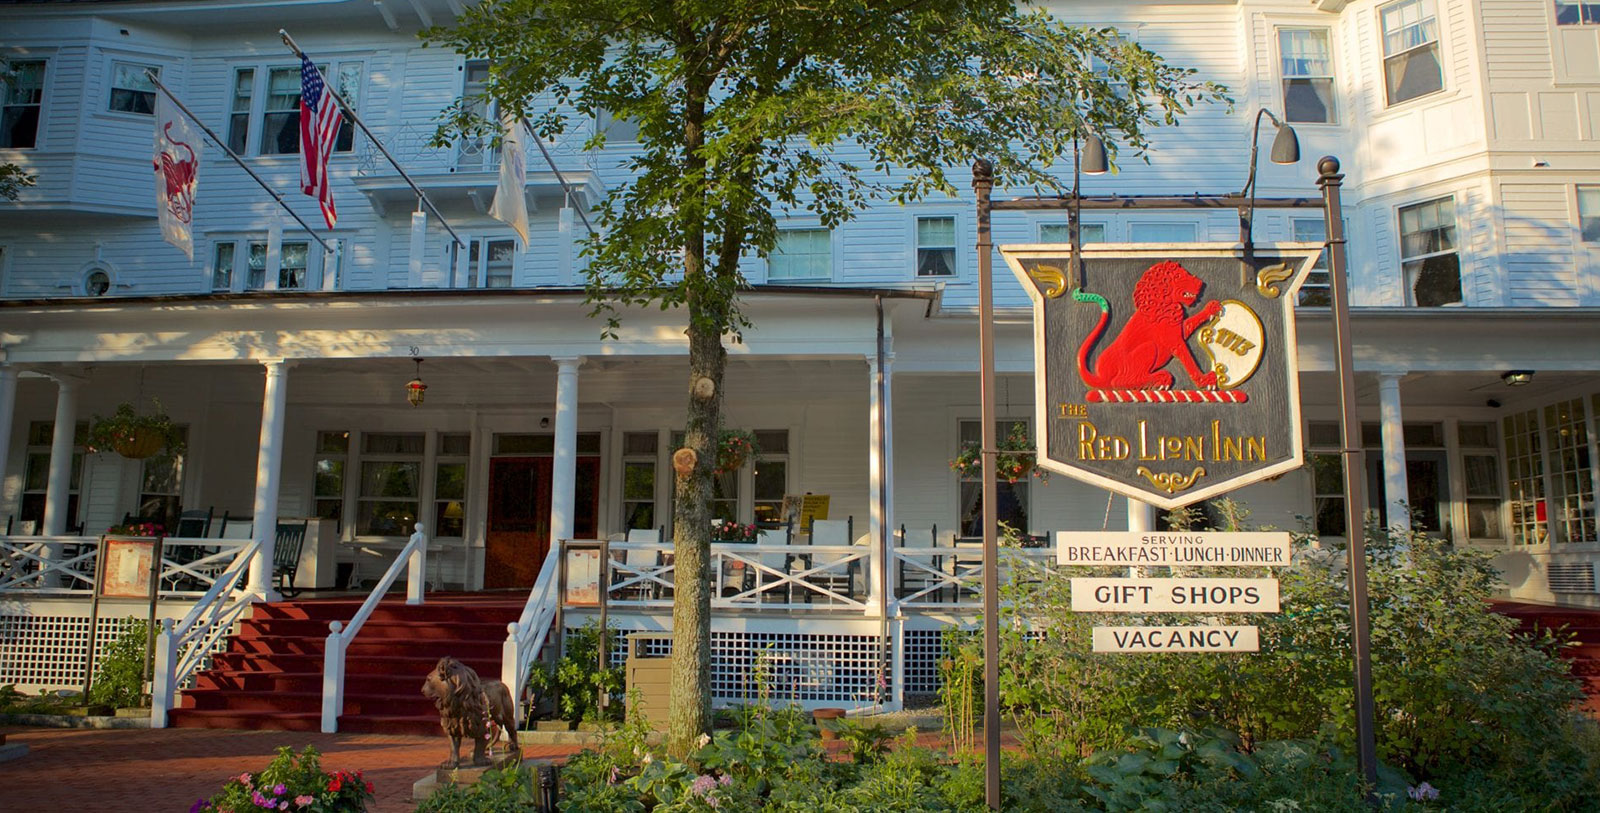 Image of Front Porch and Hotel Sign at The Red Lion Inn, 1773, Member of Historic Hotels of America, in Stockbridge, Massachusetts, Overview